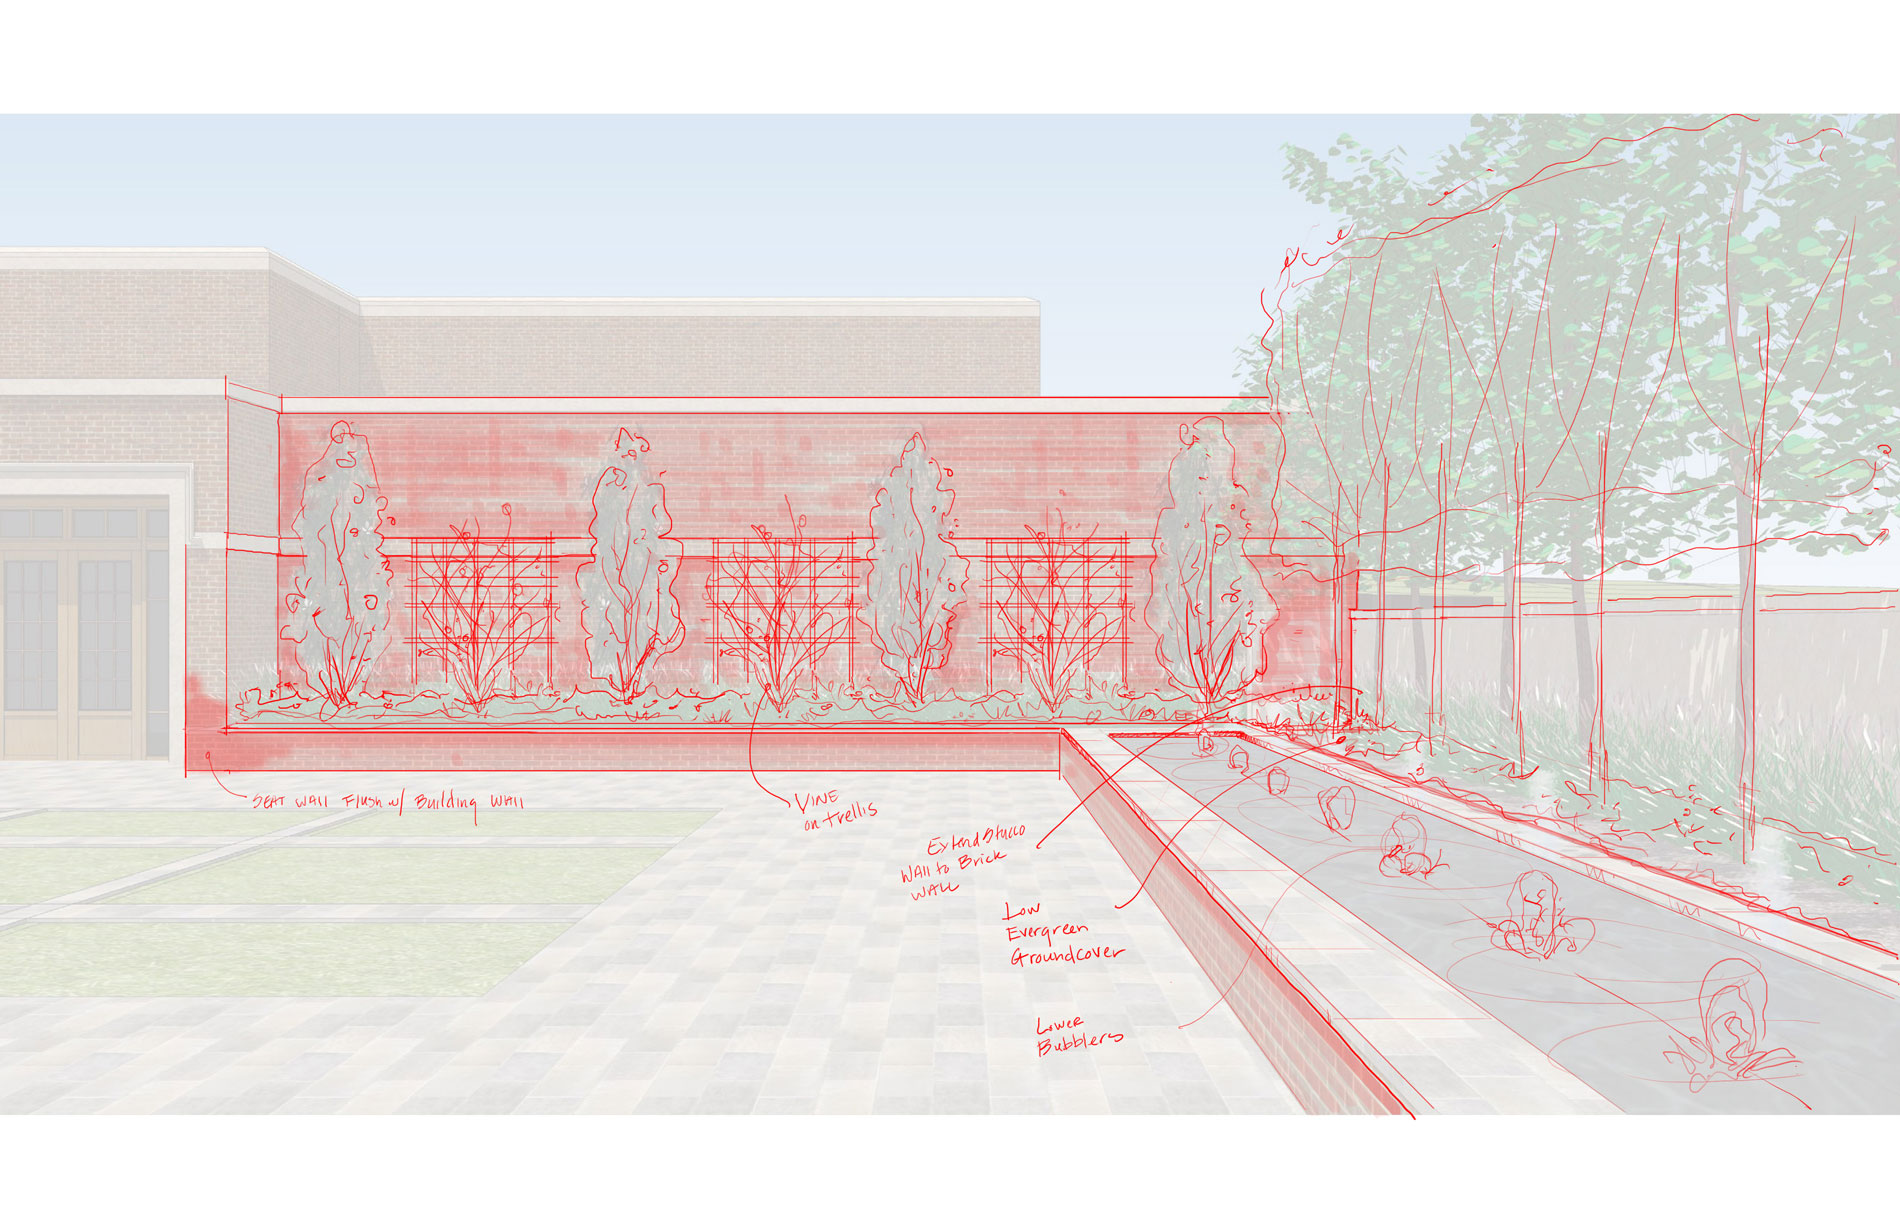 Design sketch from the corner of the courtyard showing fountain and aerial hedge to the right, and espaliered Camellias on the building wall ahead.